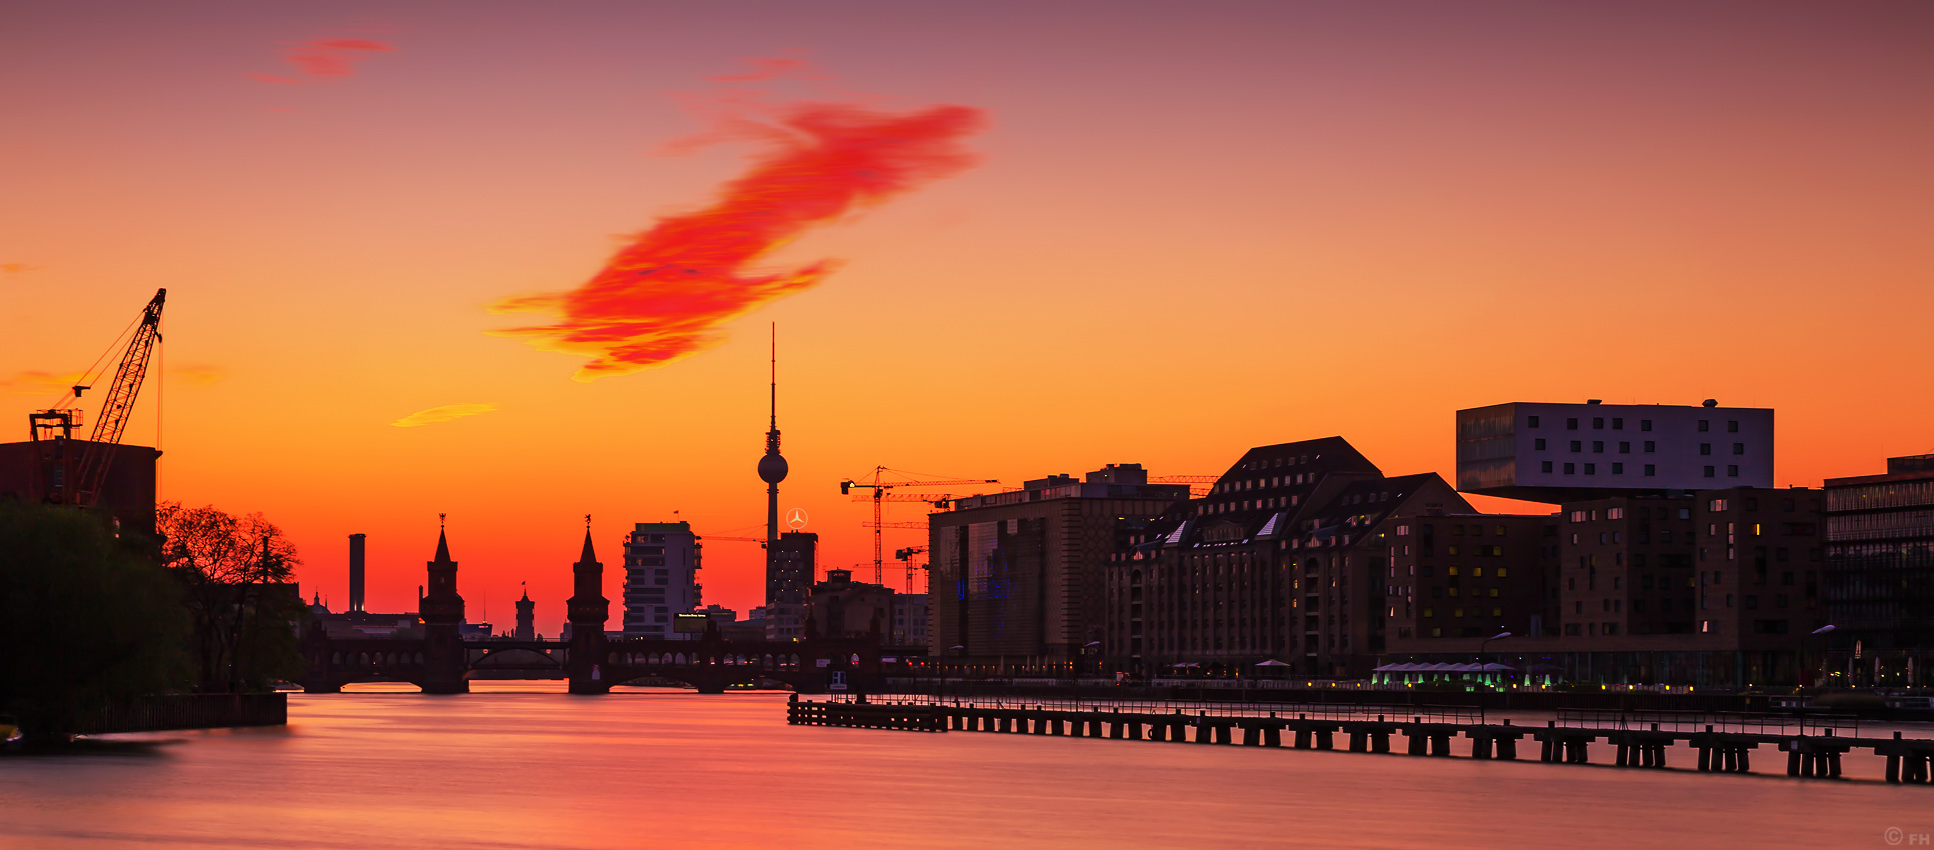 Berlin_Mediaspree_Skyline_Sunset_k